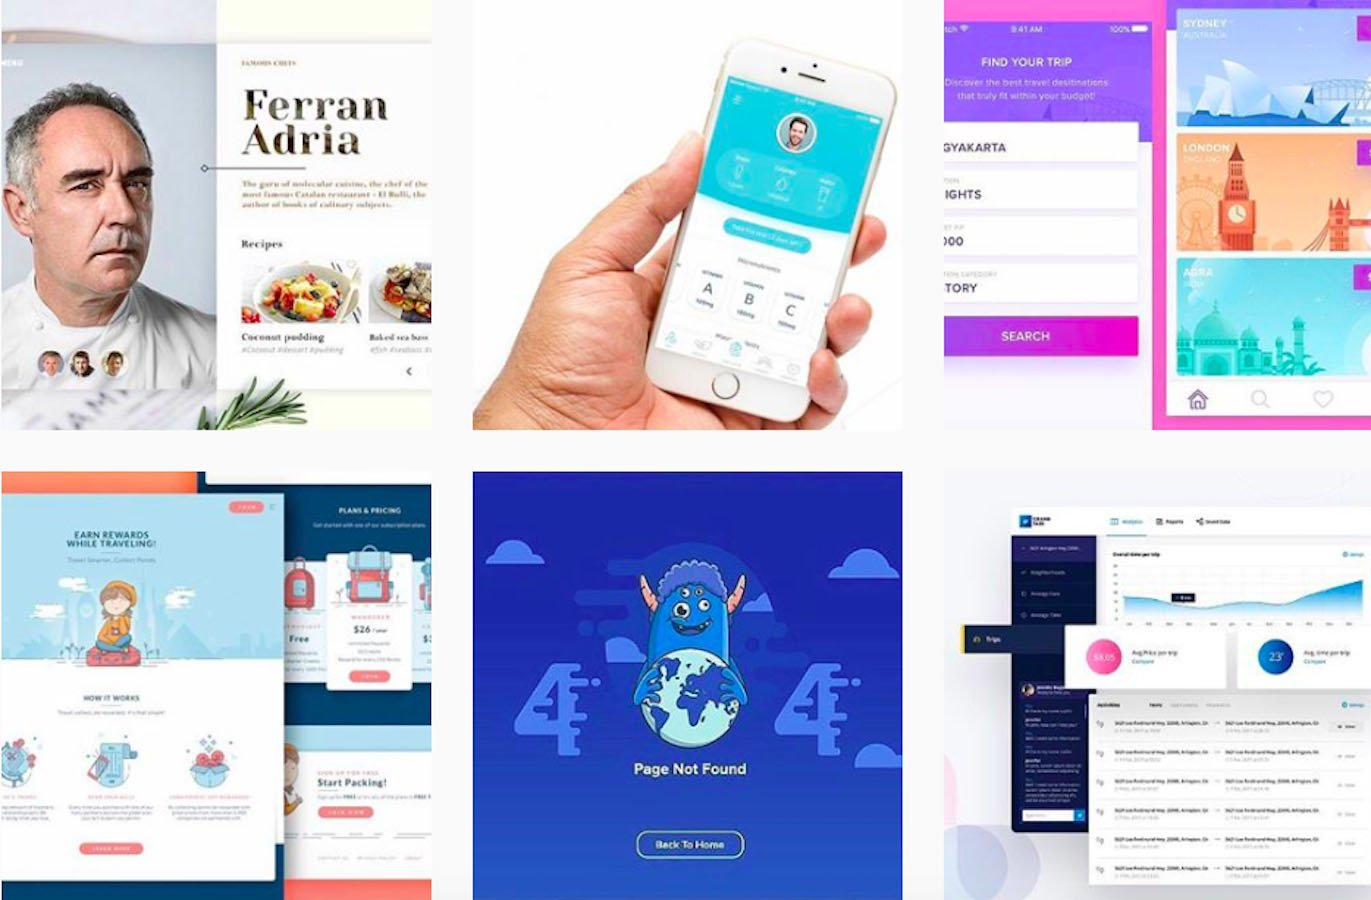 Web Design Inspiration: 110+ Accounts On Instagram and 10+ Best UX & Web Design Books in 2020 - webdesignit